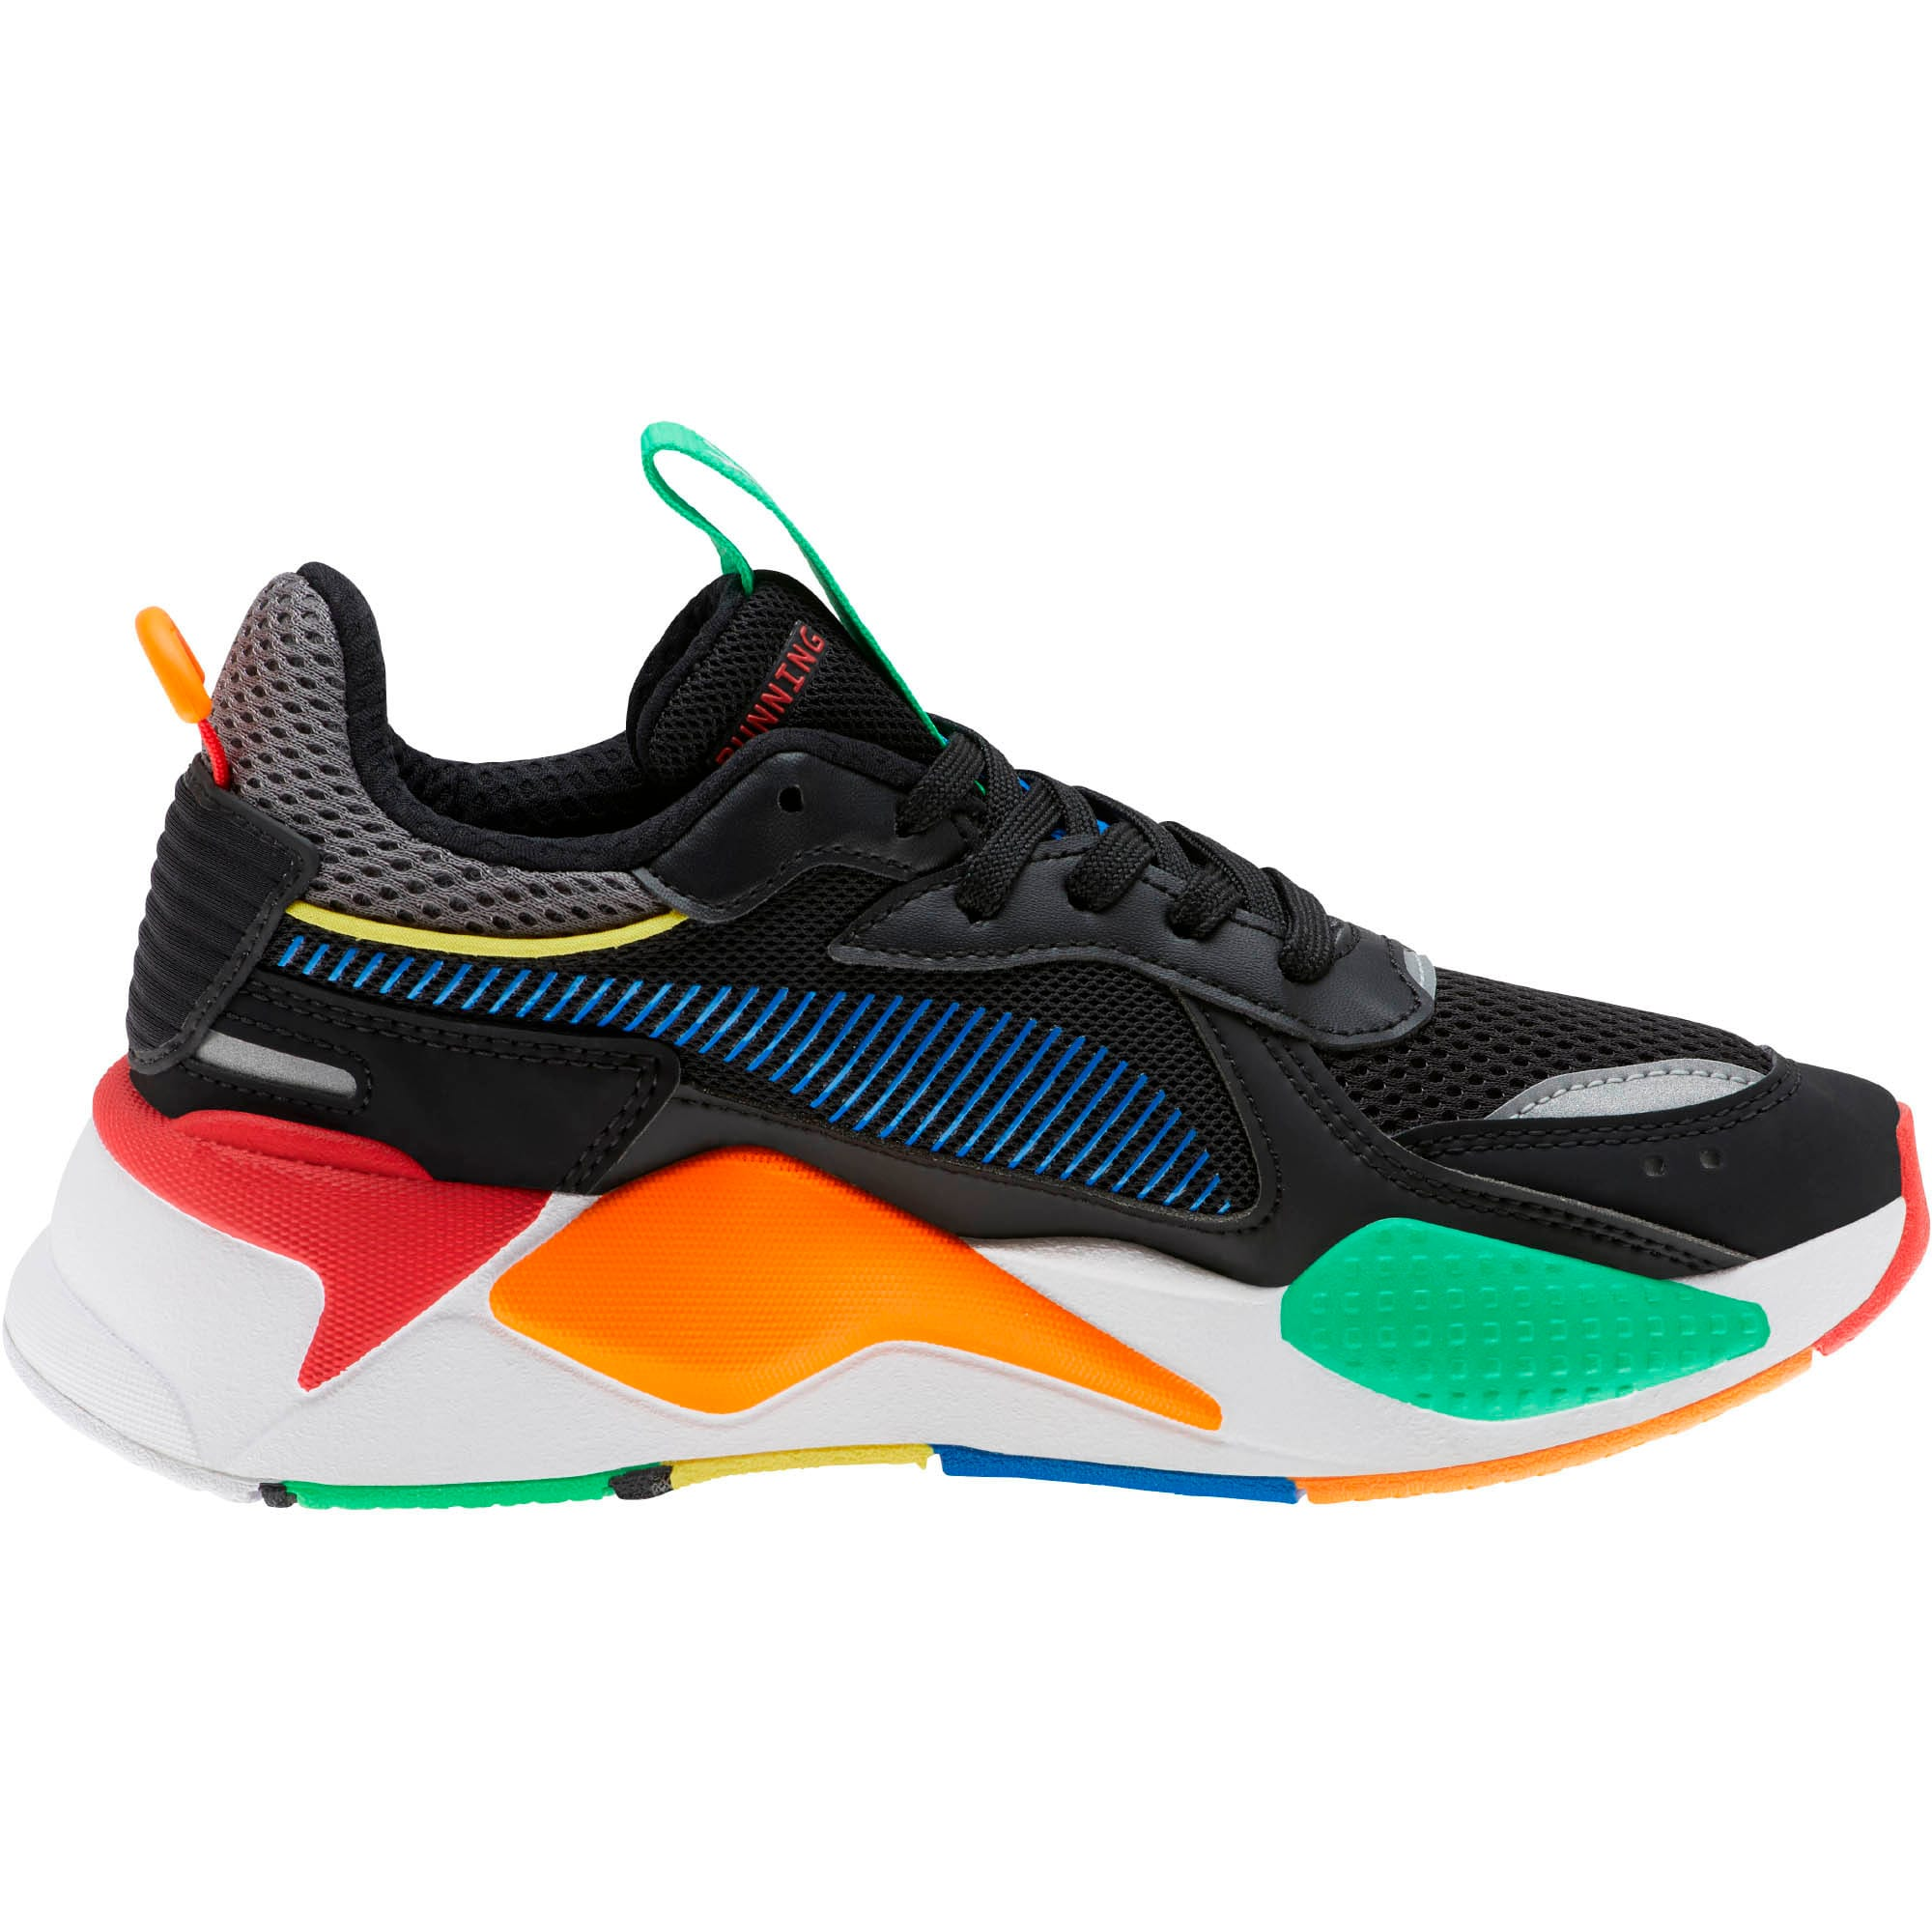 RS-X Bold Sneakers JR, P Black-ANDEAN TOUCAN-Orange, large